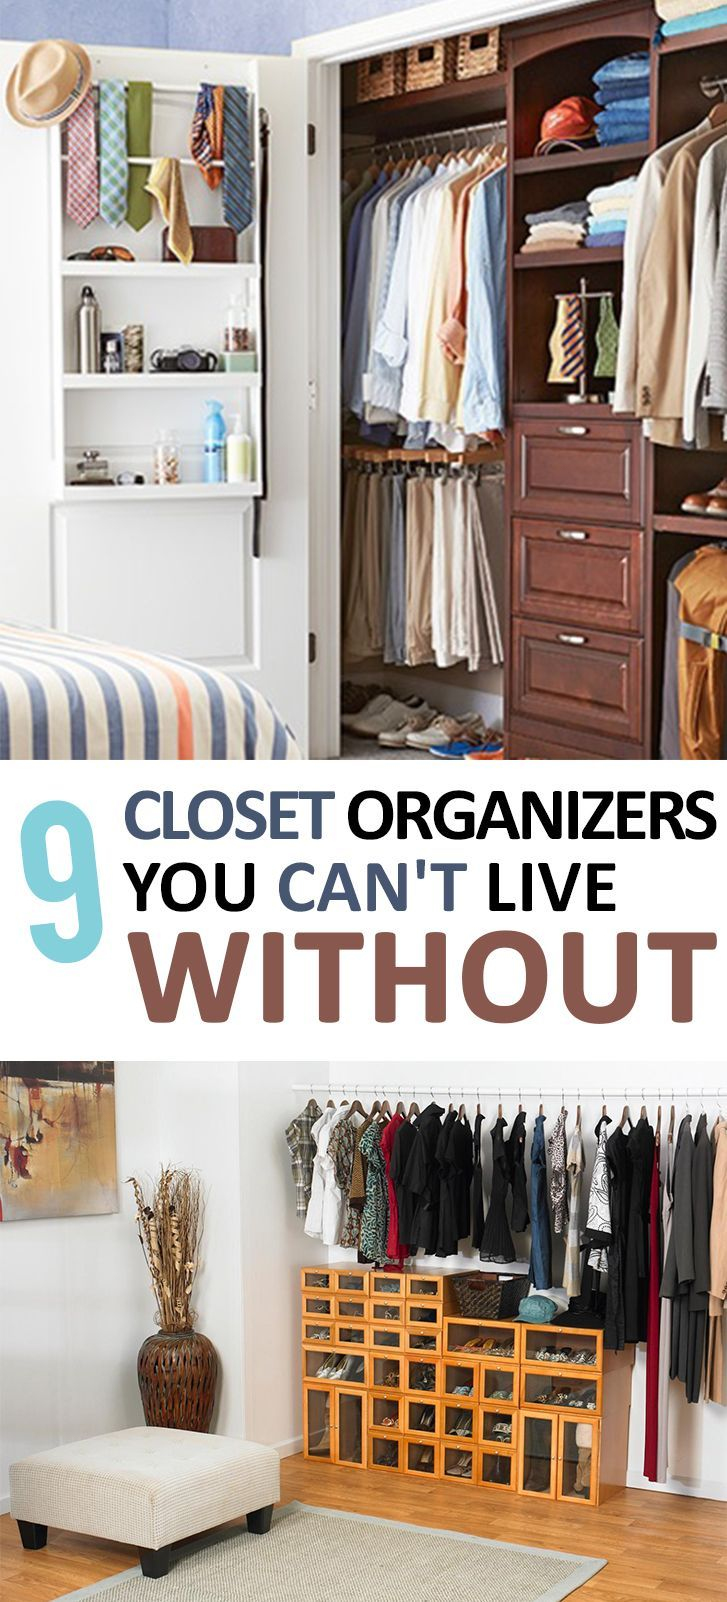 Closet Organization, Cheap Closet Organization, Closet Organziation Tips, How to Organize Your Closet, Clutter Free Closet TIps,  Organization Tips and Tricks, Organization 101, Home Organization. Closet, Organization, DIY Home, Organization.